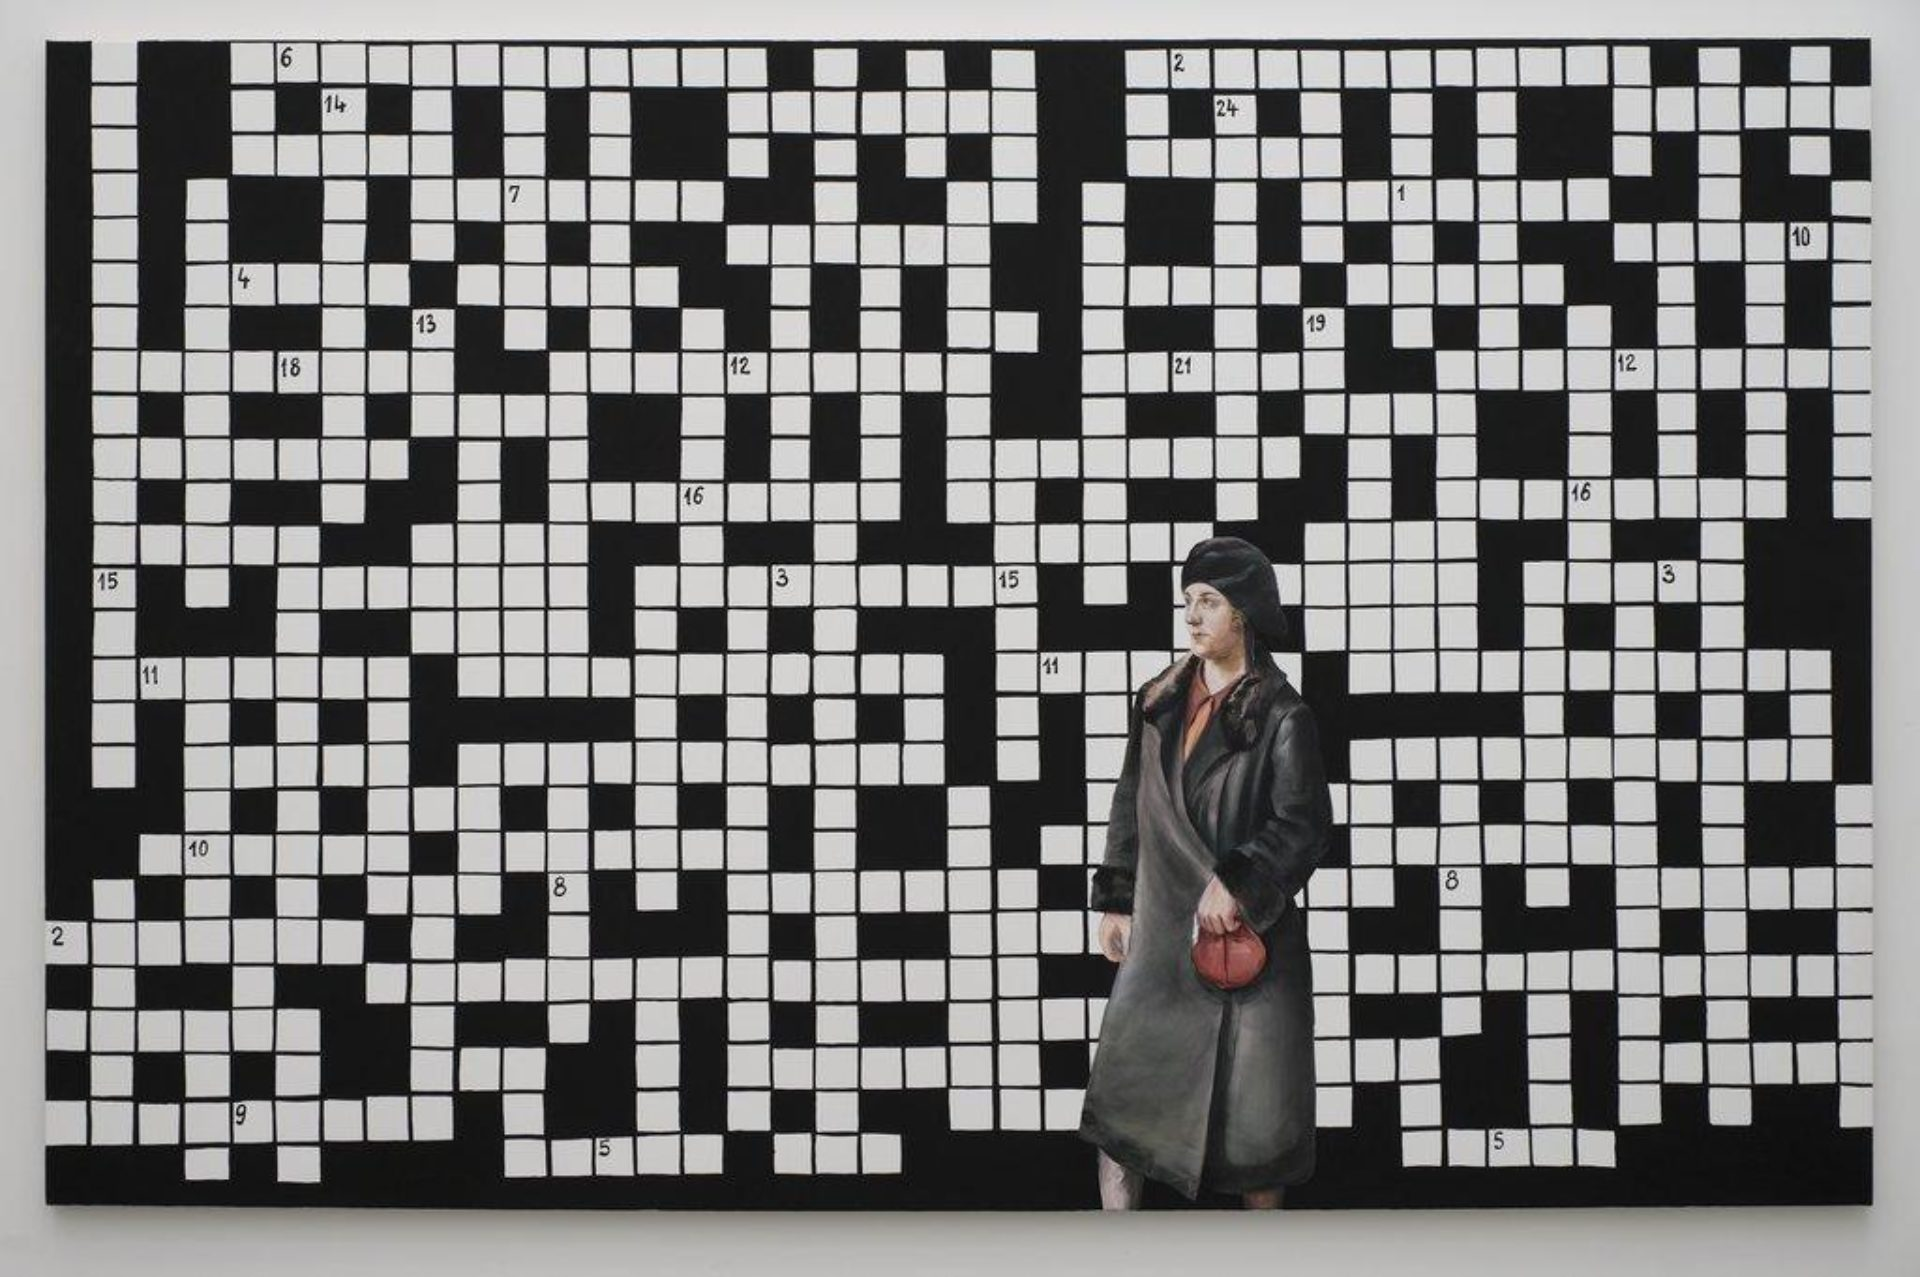 Paulina Ołowska, Crossword Puzzle with Lady in Black Coat, 2009